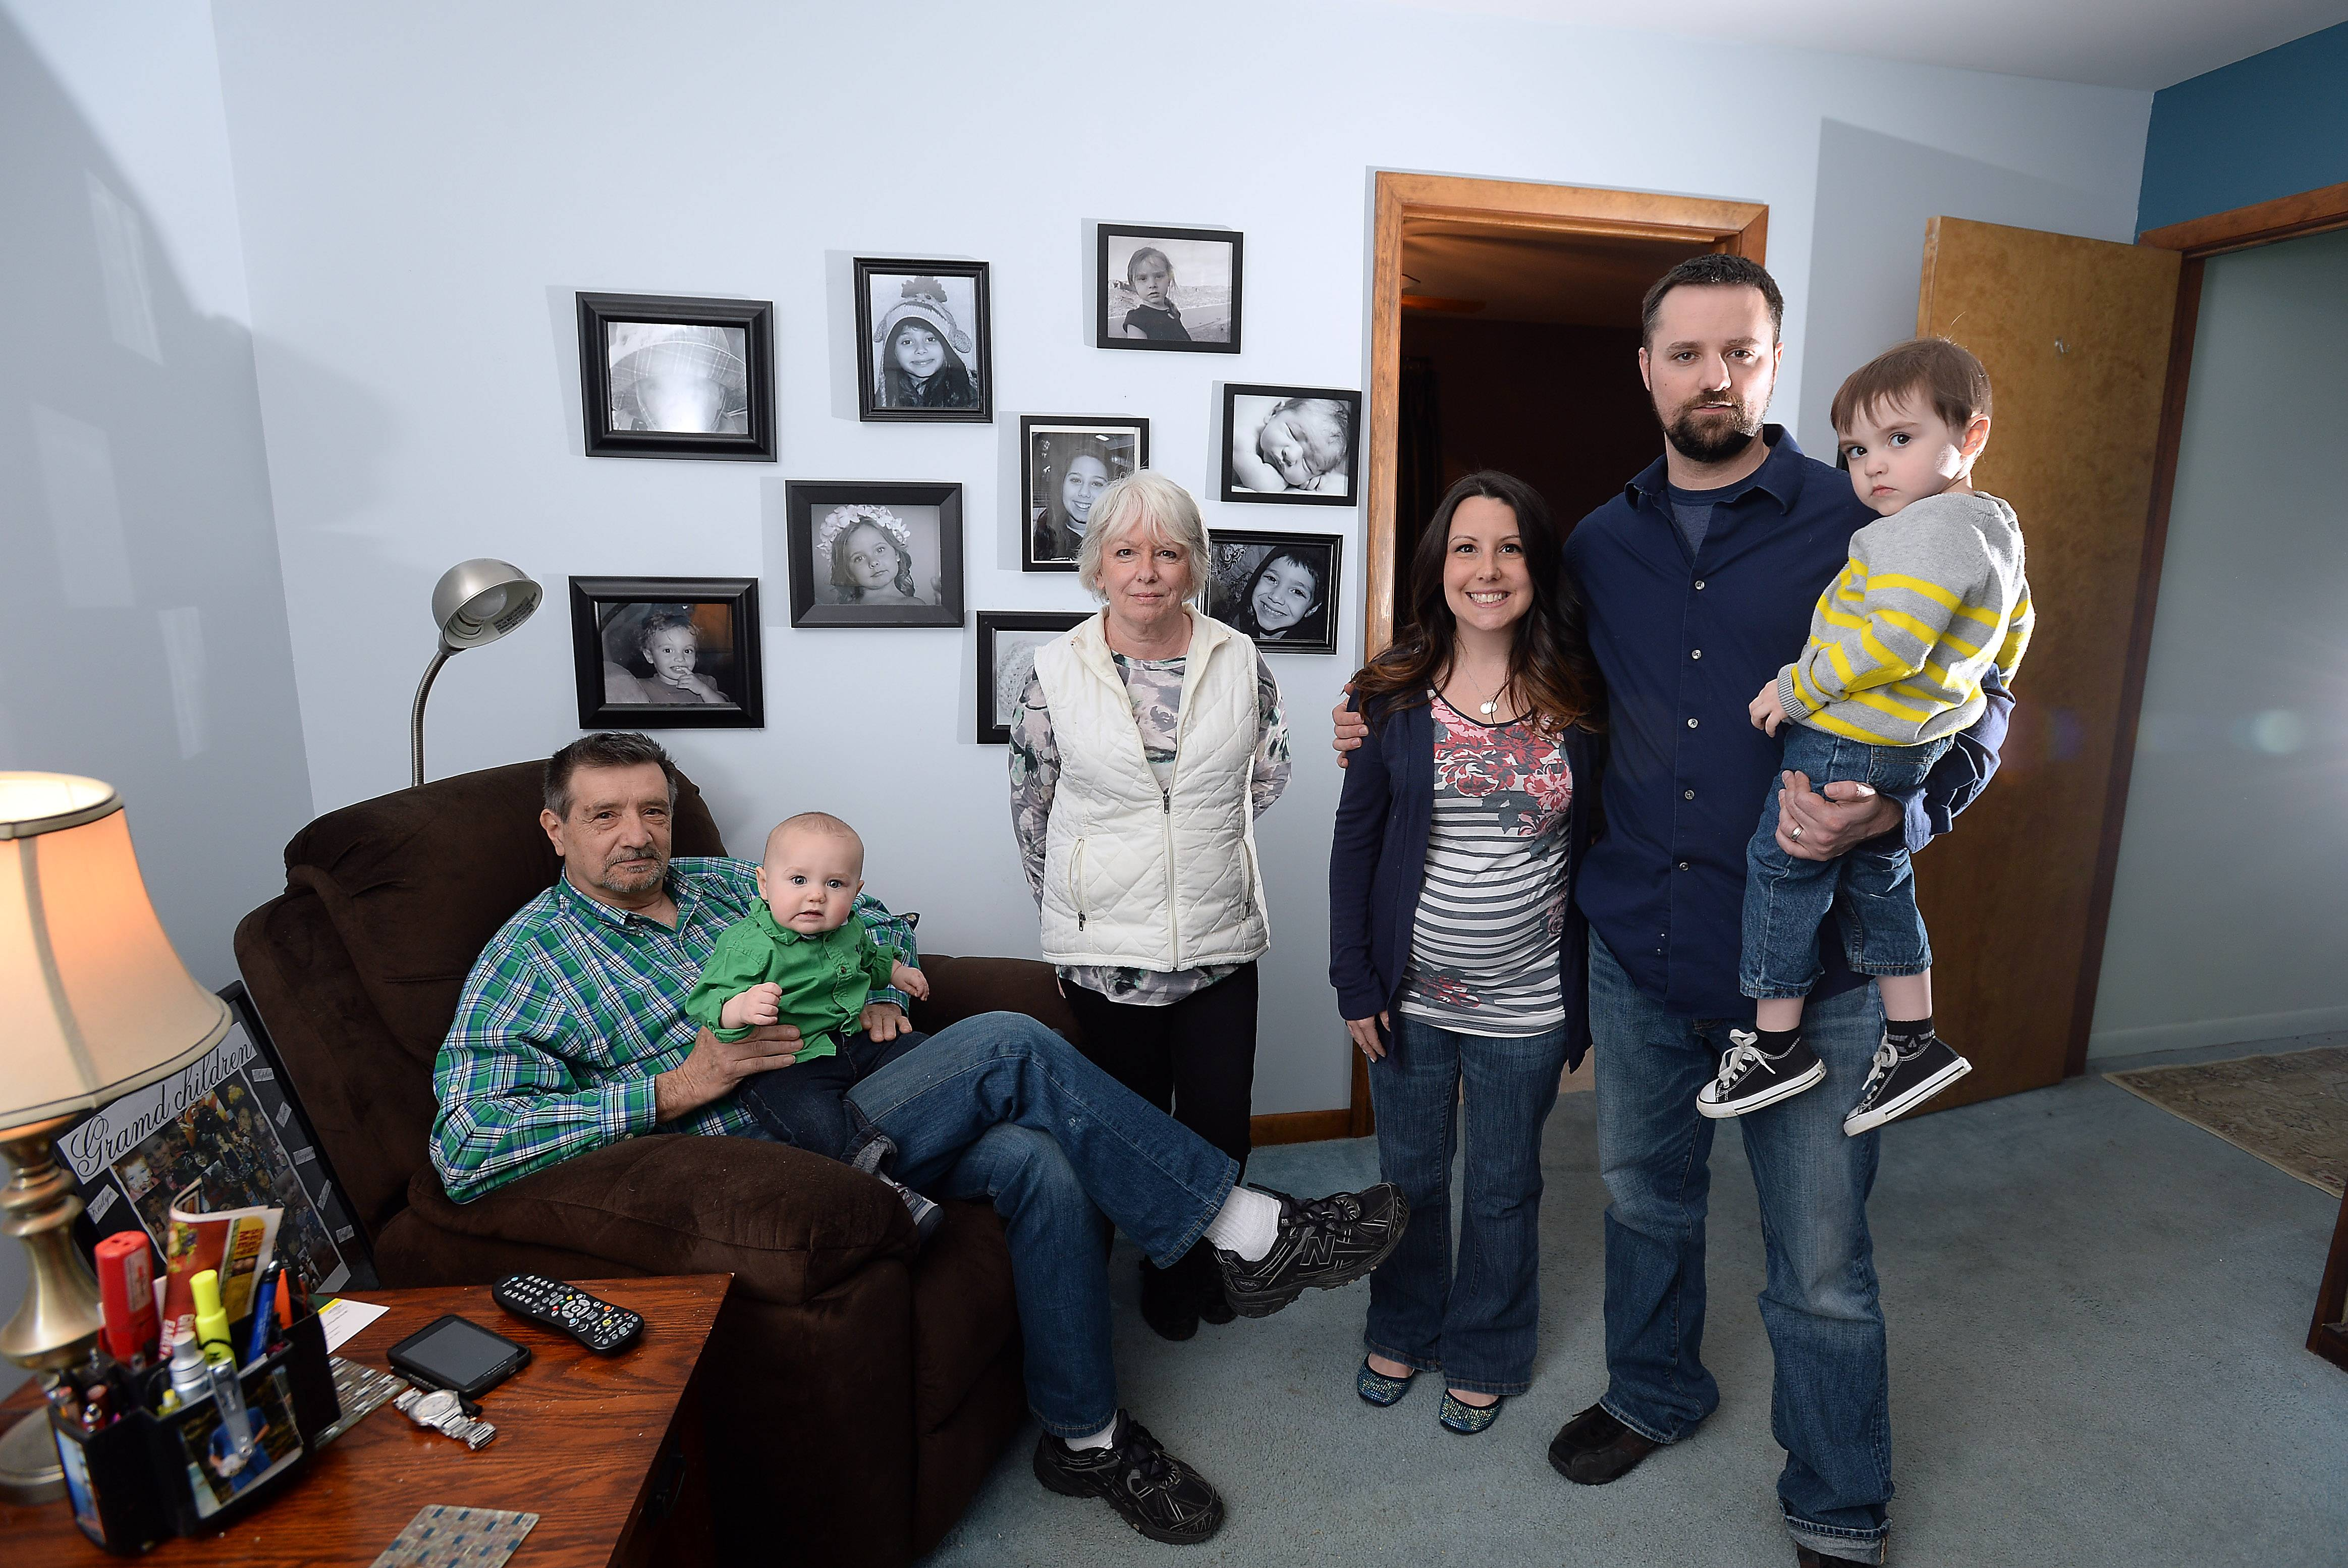 Teacher Matthew Dowd and his wife Lynn, at right with son Grayson, purchased a home so that Lynn's parents, Robert and Patricia Pagni, left, could live with them. Robert holds grandson Griffin.